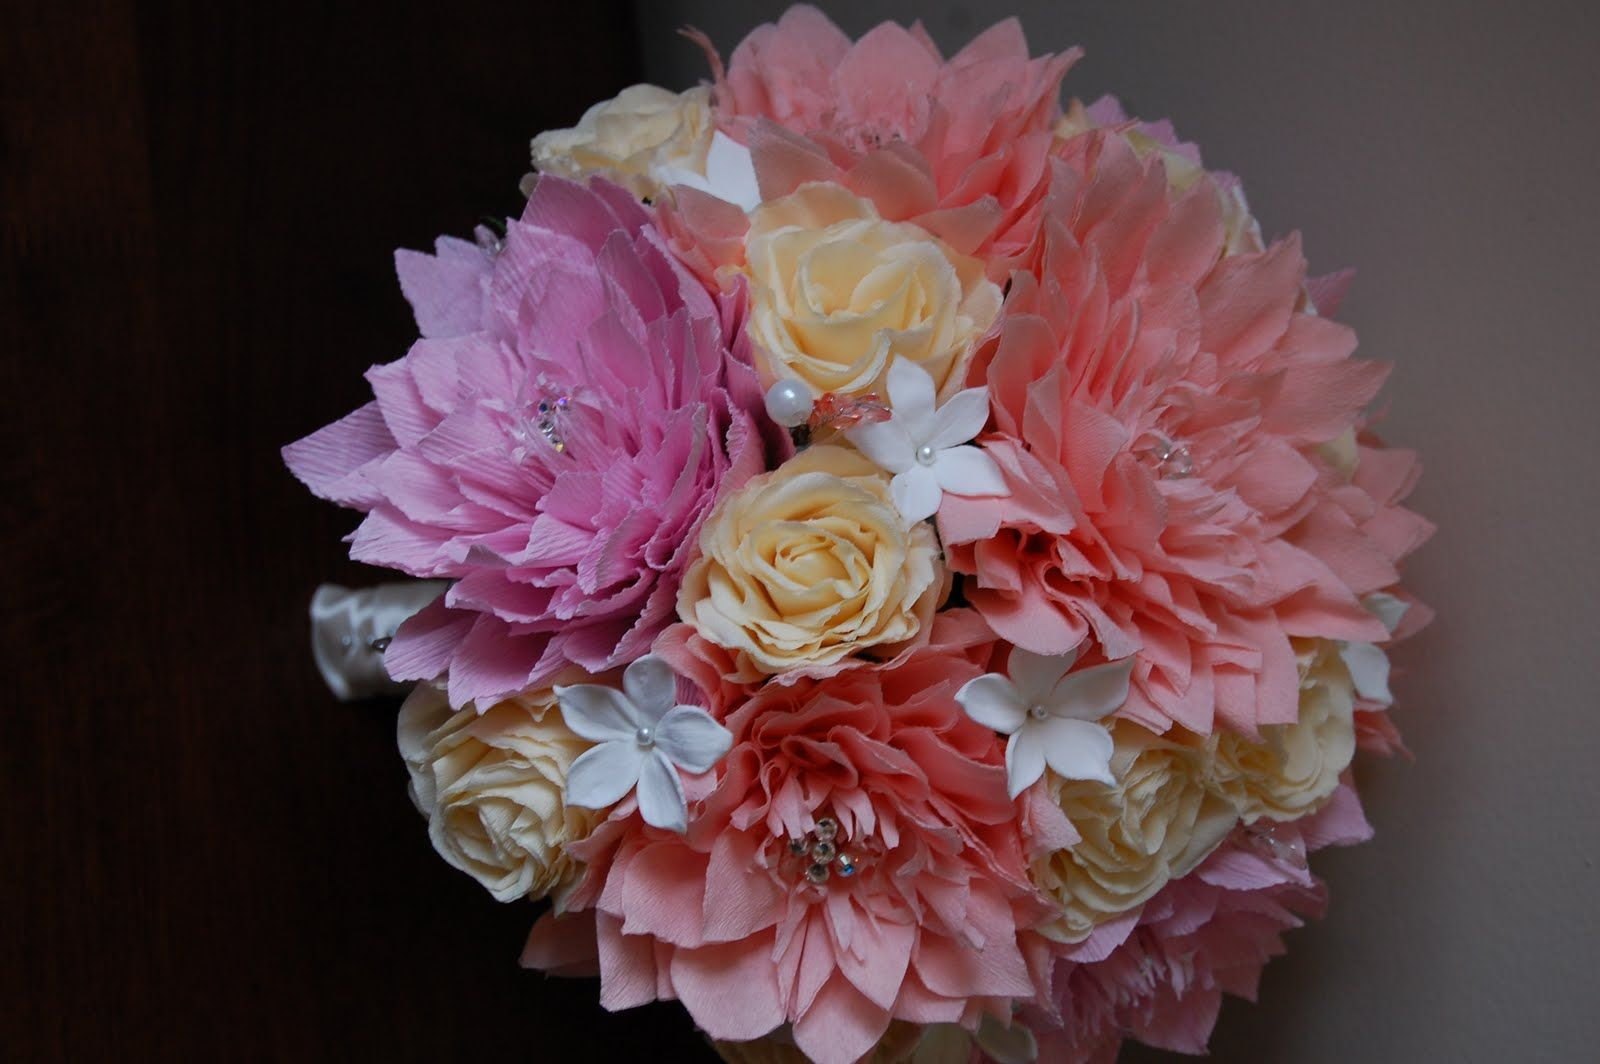 How To Make A Paper Flower | ORIGAMI | Pinterest | Paper flower ...